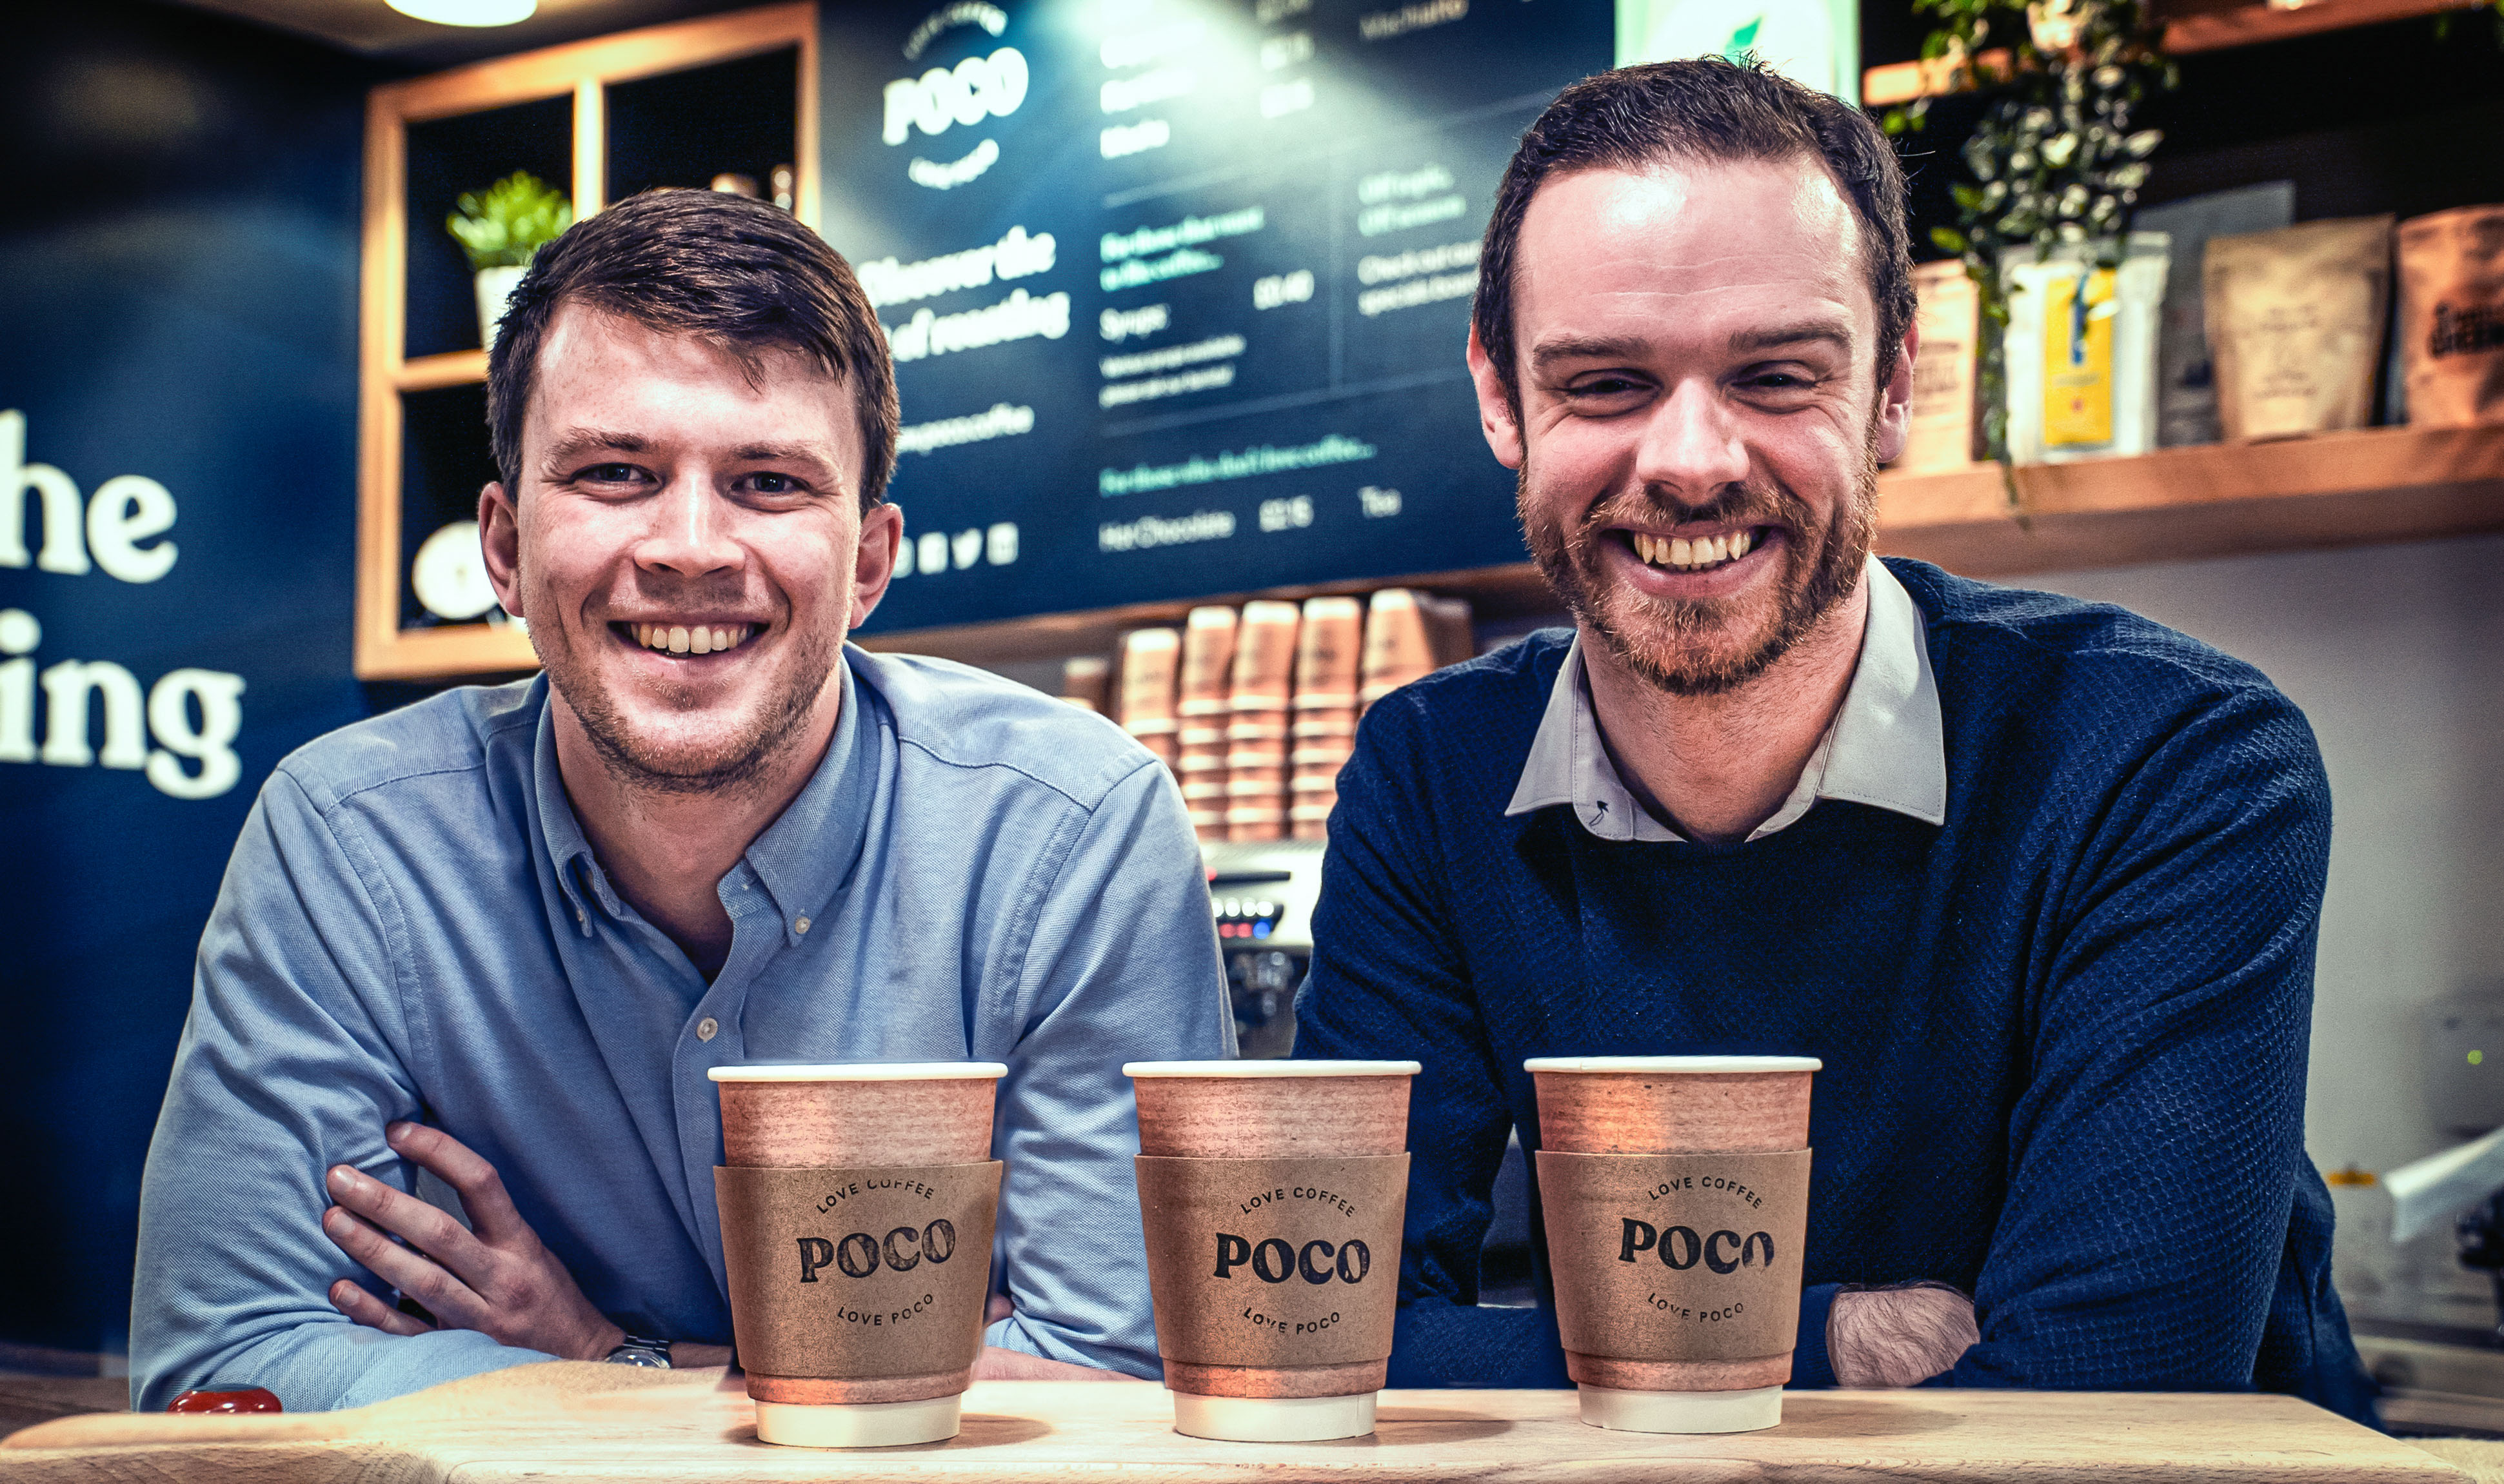 David Porteous and Ross Mclean of Poco Roast